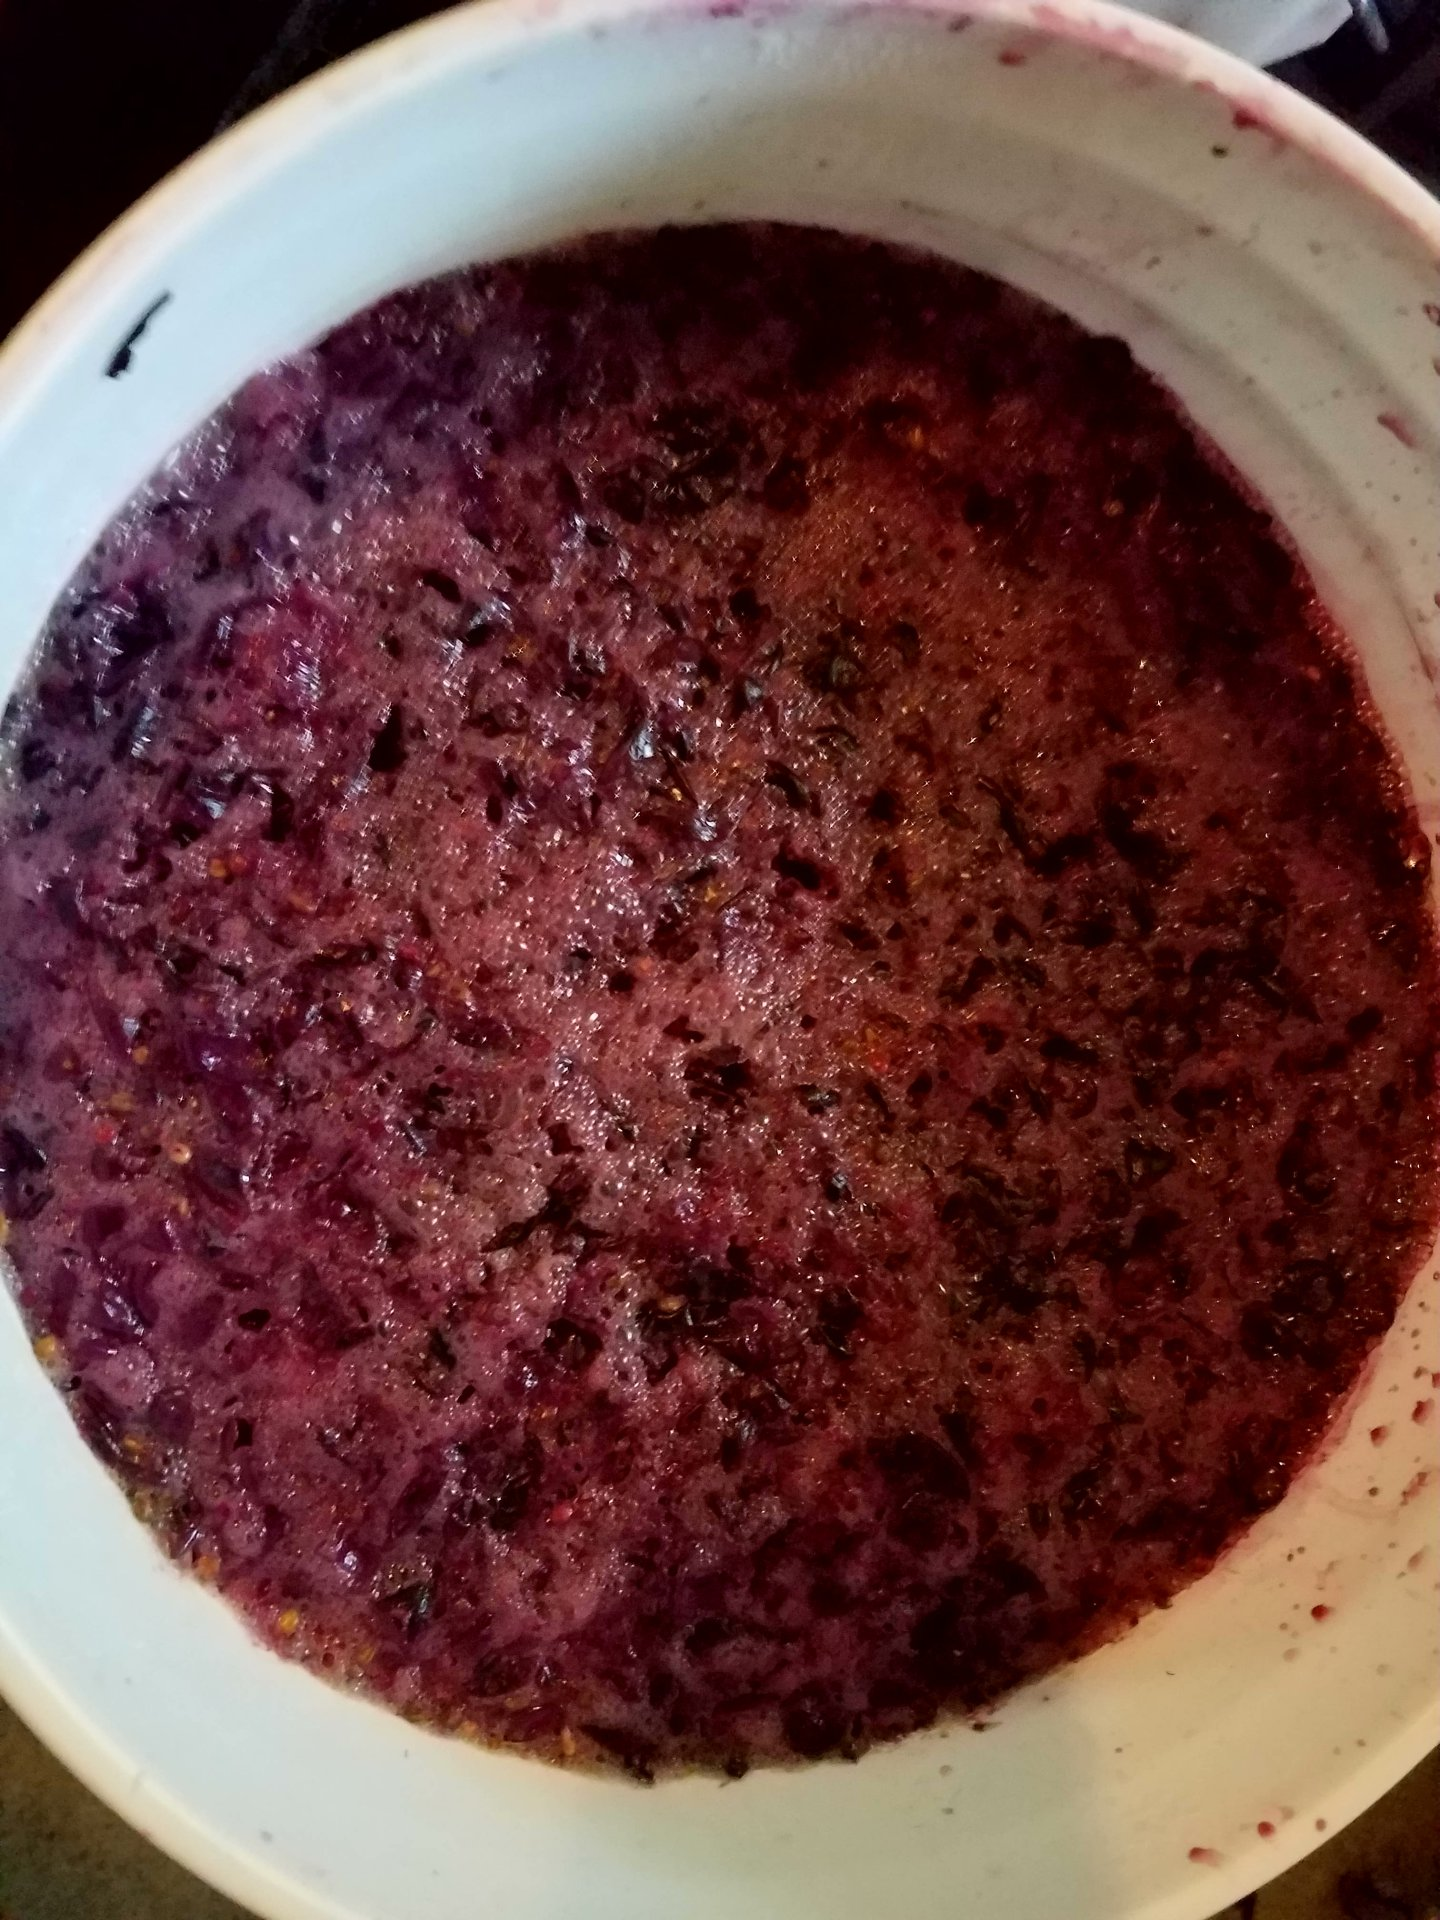 Home Winemaking with Juice